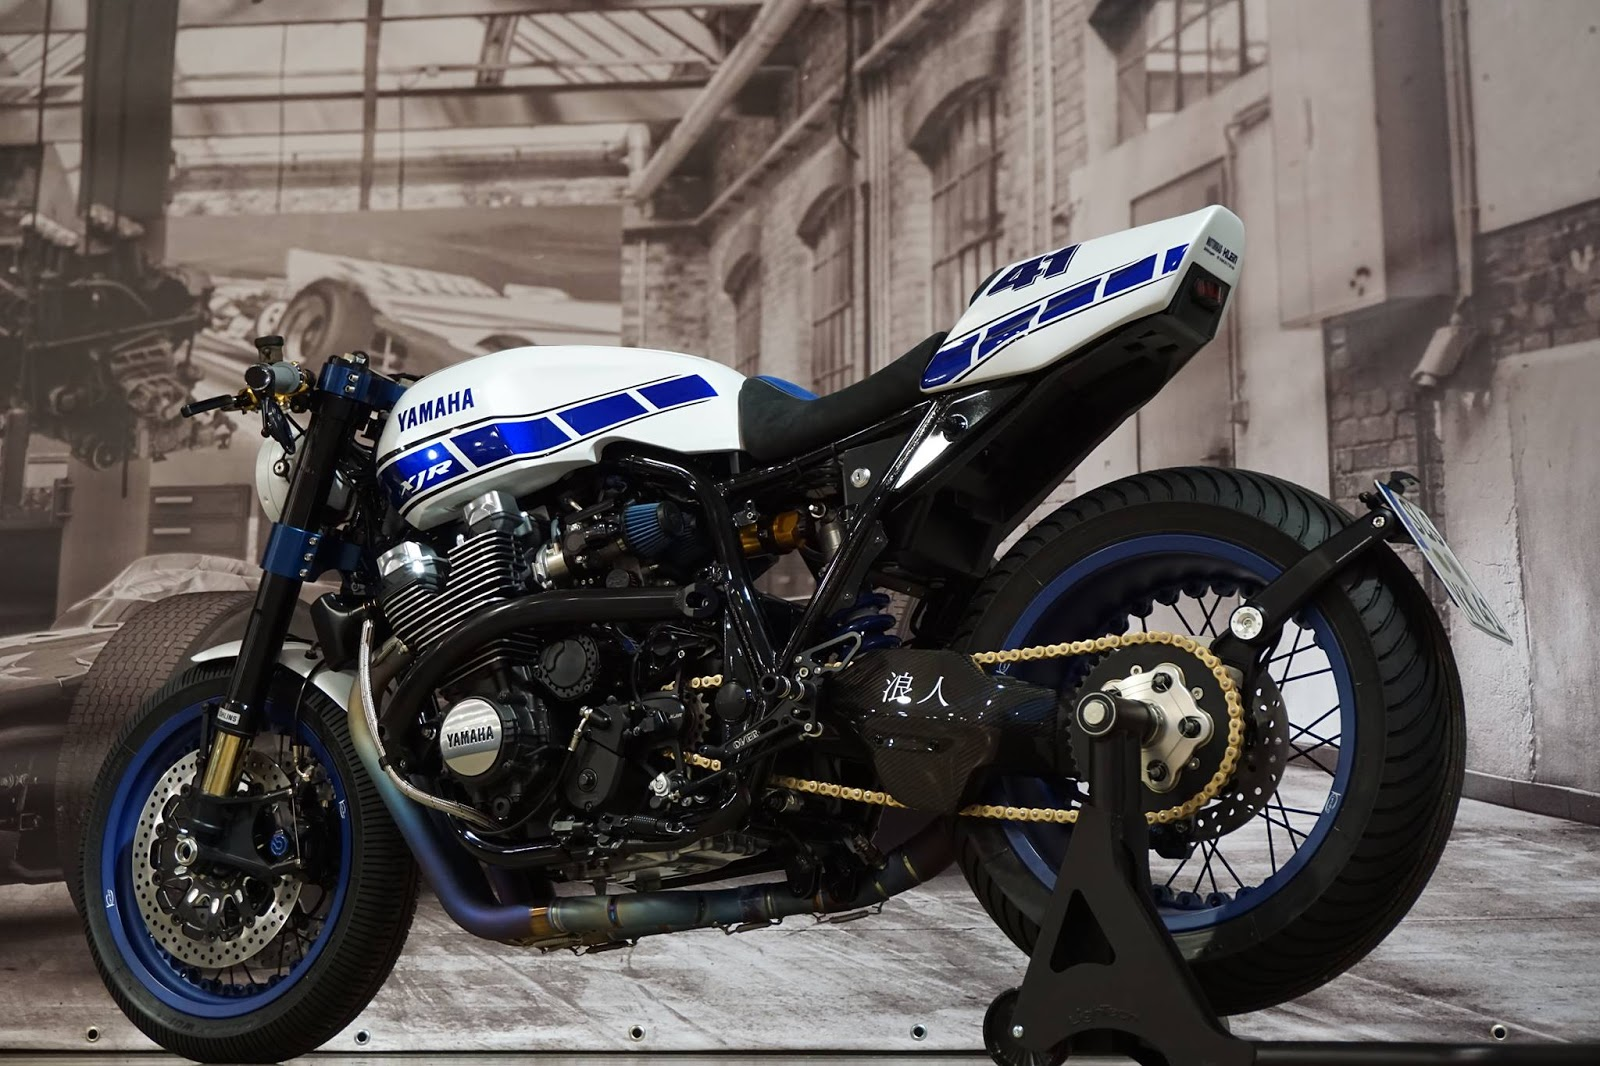 racing caf yamaha xjr 1300 yard built 2016 by yamaha klein. Black Bedroom Furniture Sets. Home Design Ideas